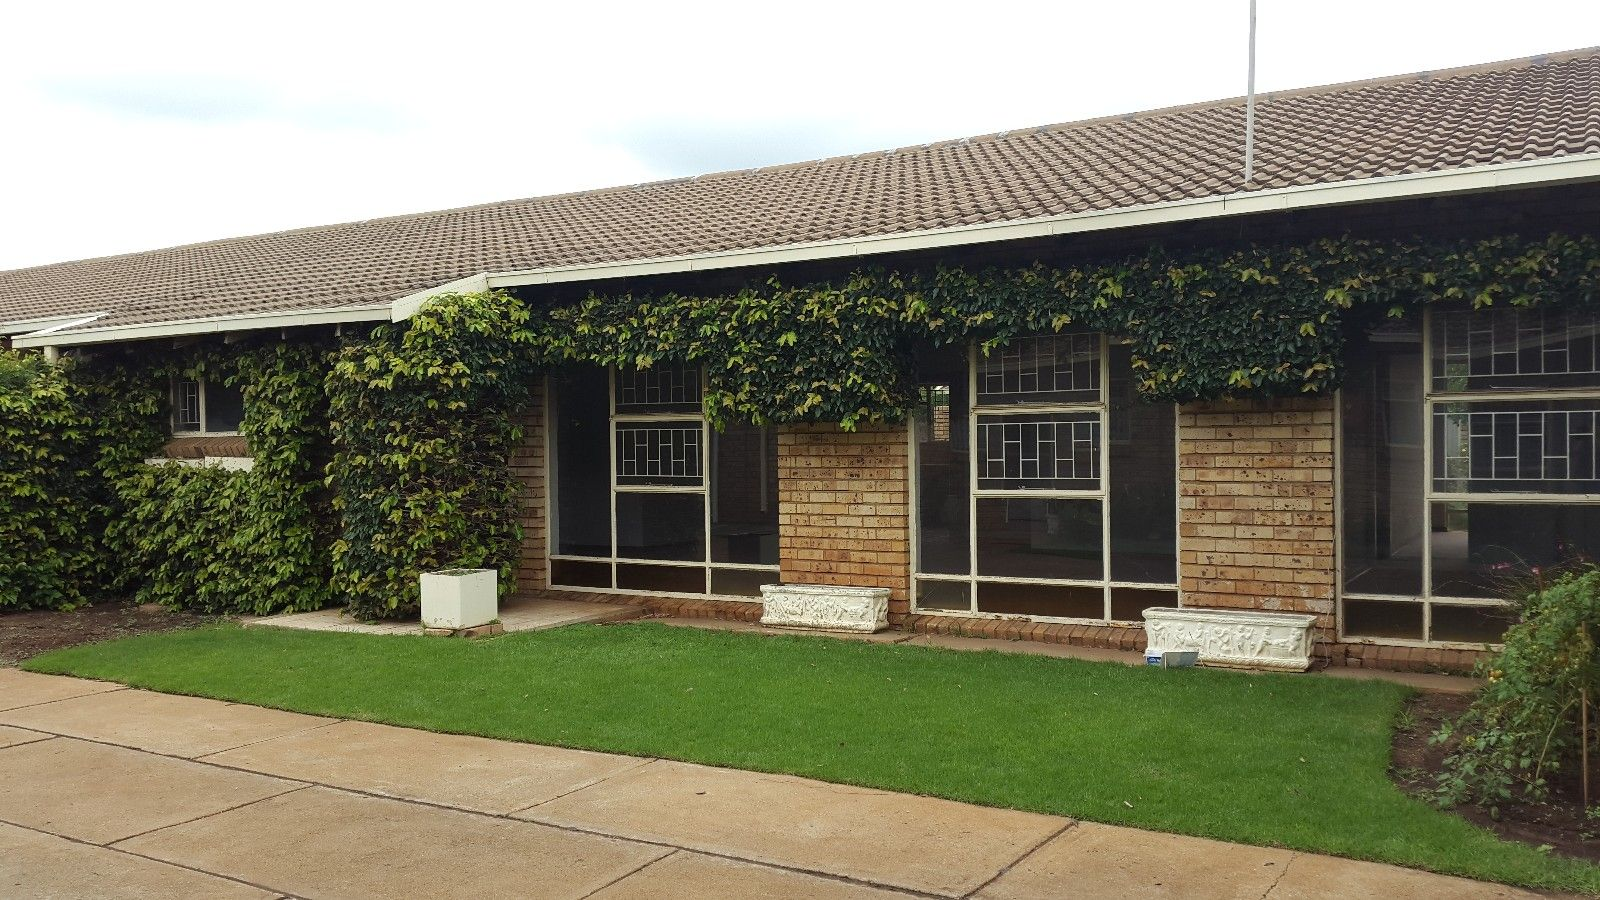 Potchefstroom Central property for sale. Ref No: 13457215. Picture no 1